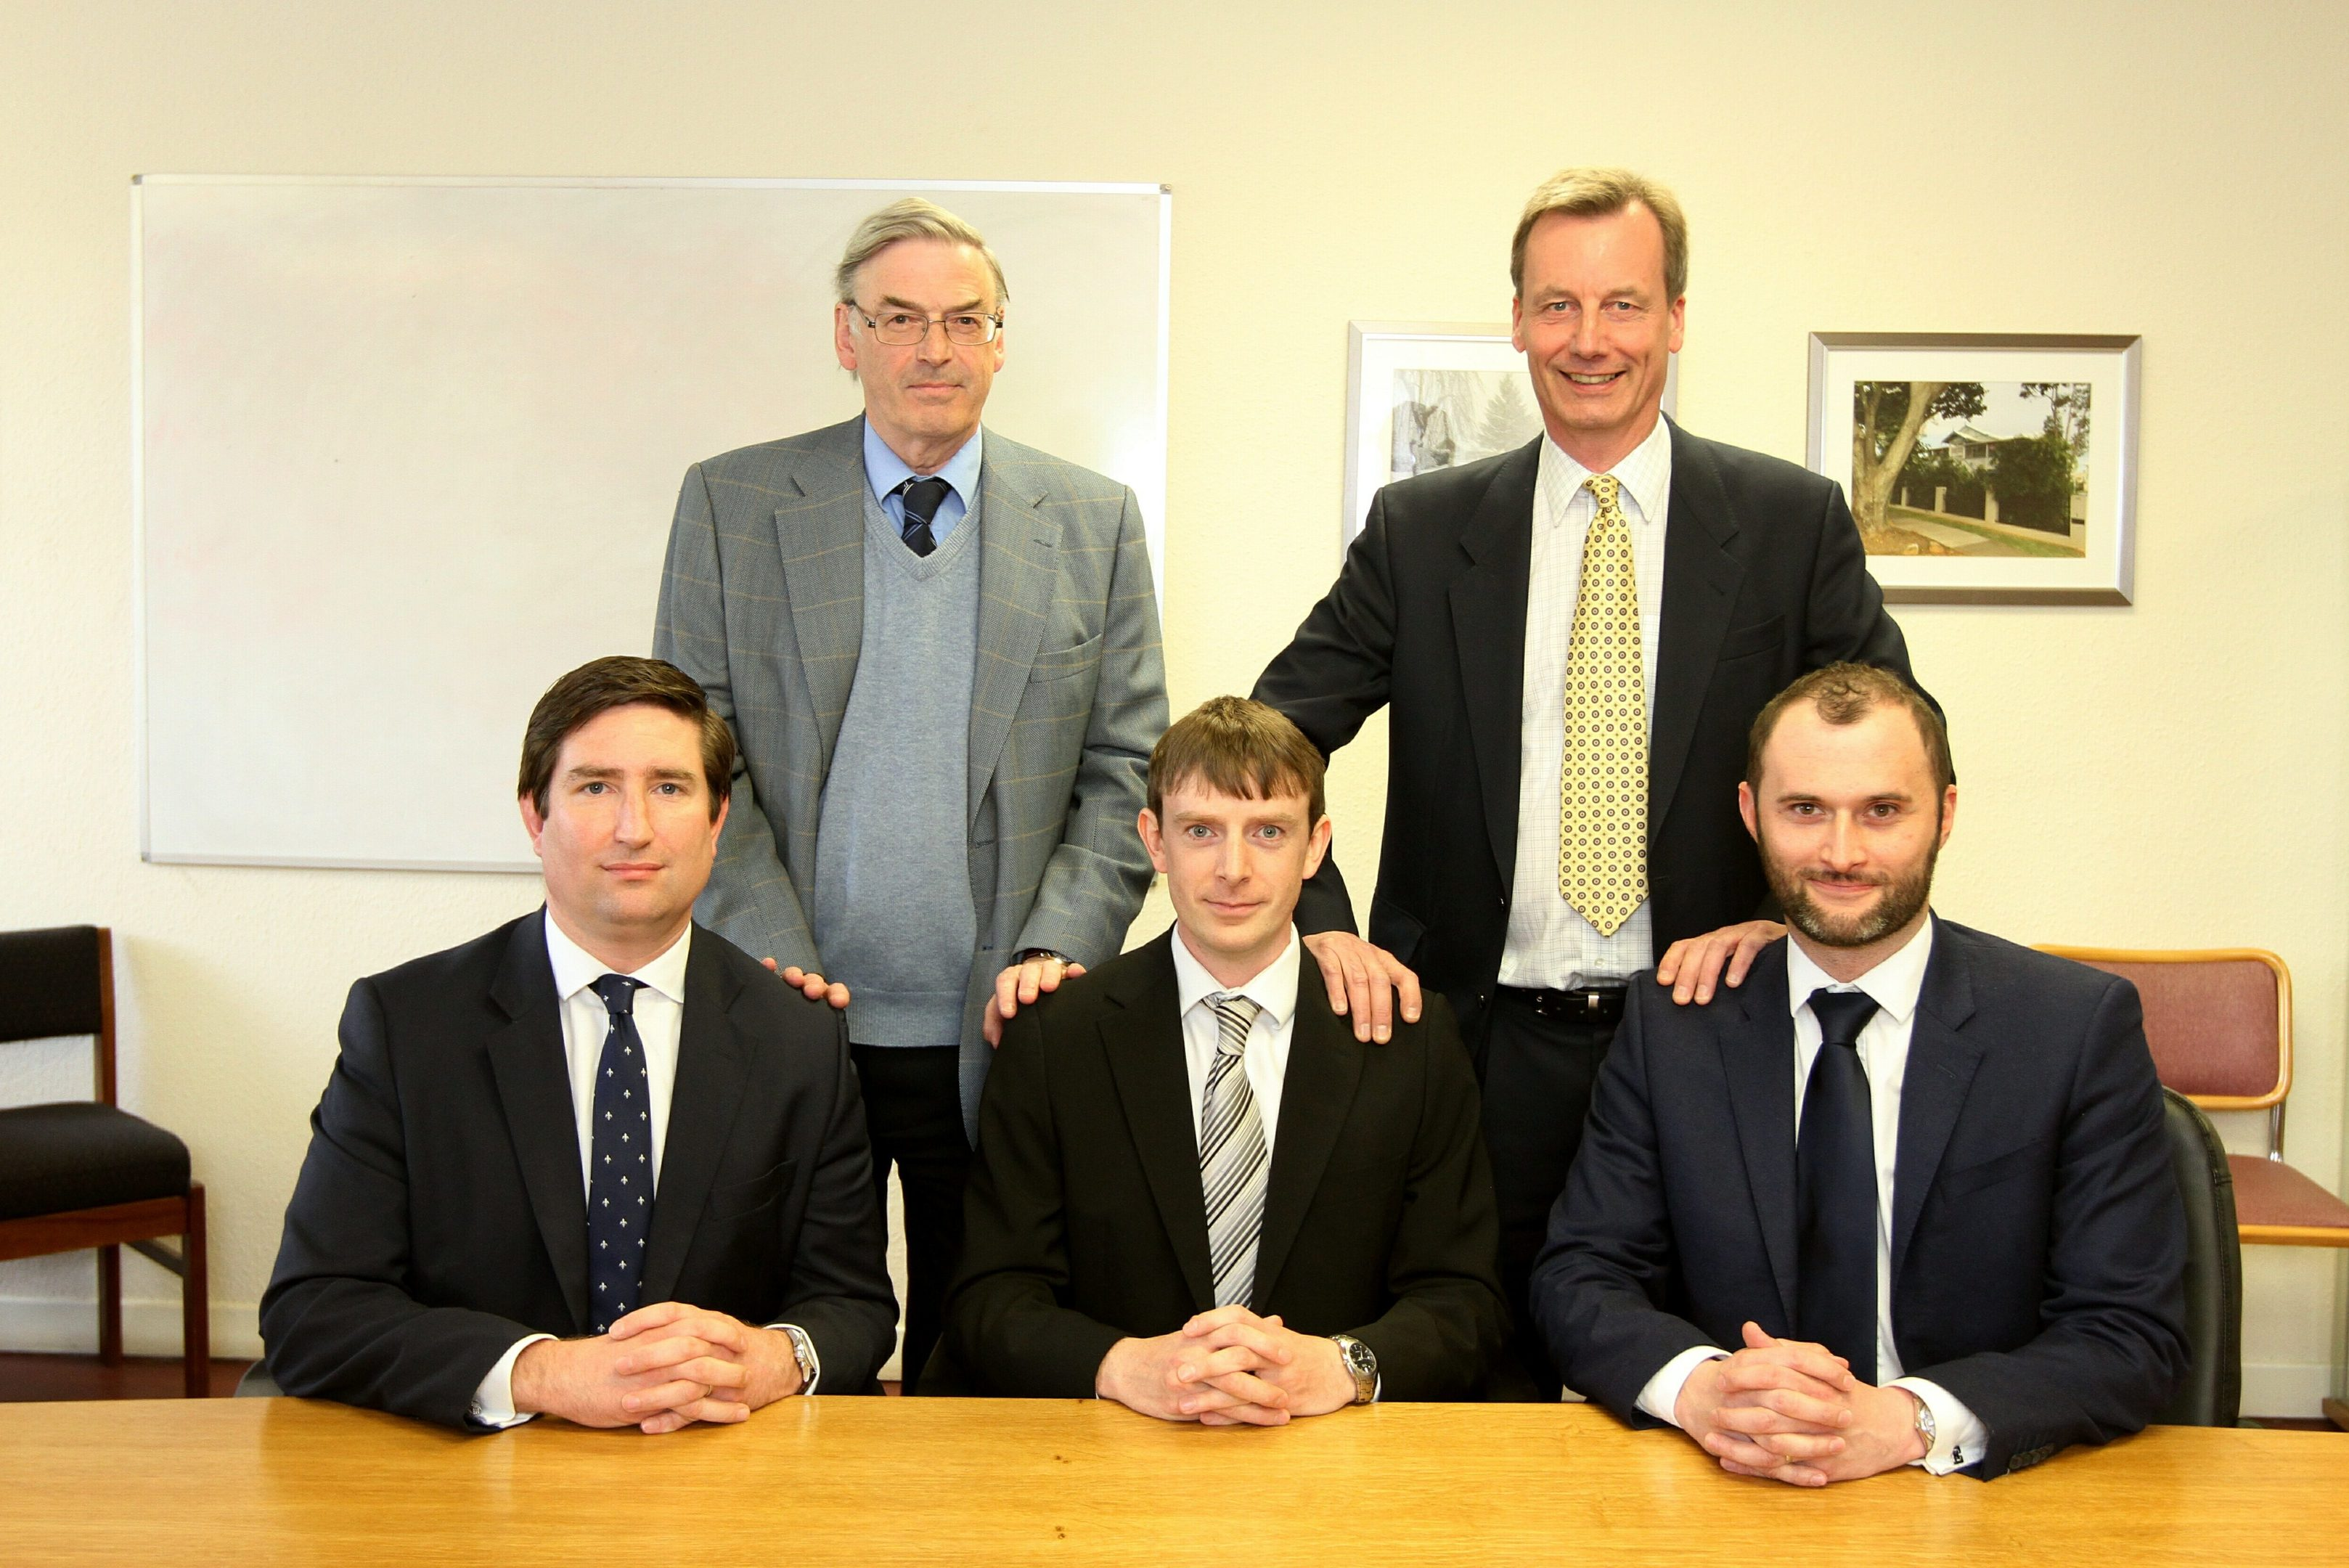 Seated are the new J&D Wilkie board of Roger McGill (Finance Director), Hamish Roweuan (joint Managing Director) and Jean- Christophe Gravier(joint Managing Director), with the old board standing of Mike Rowan and Bob Low.